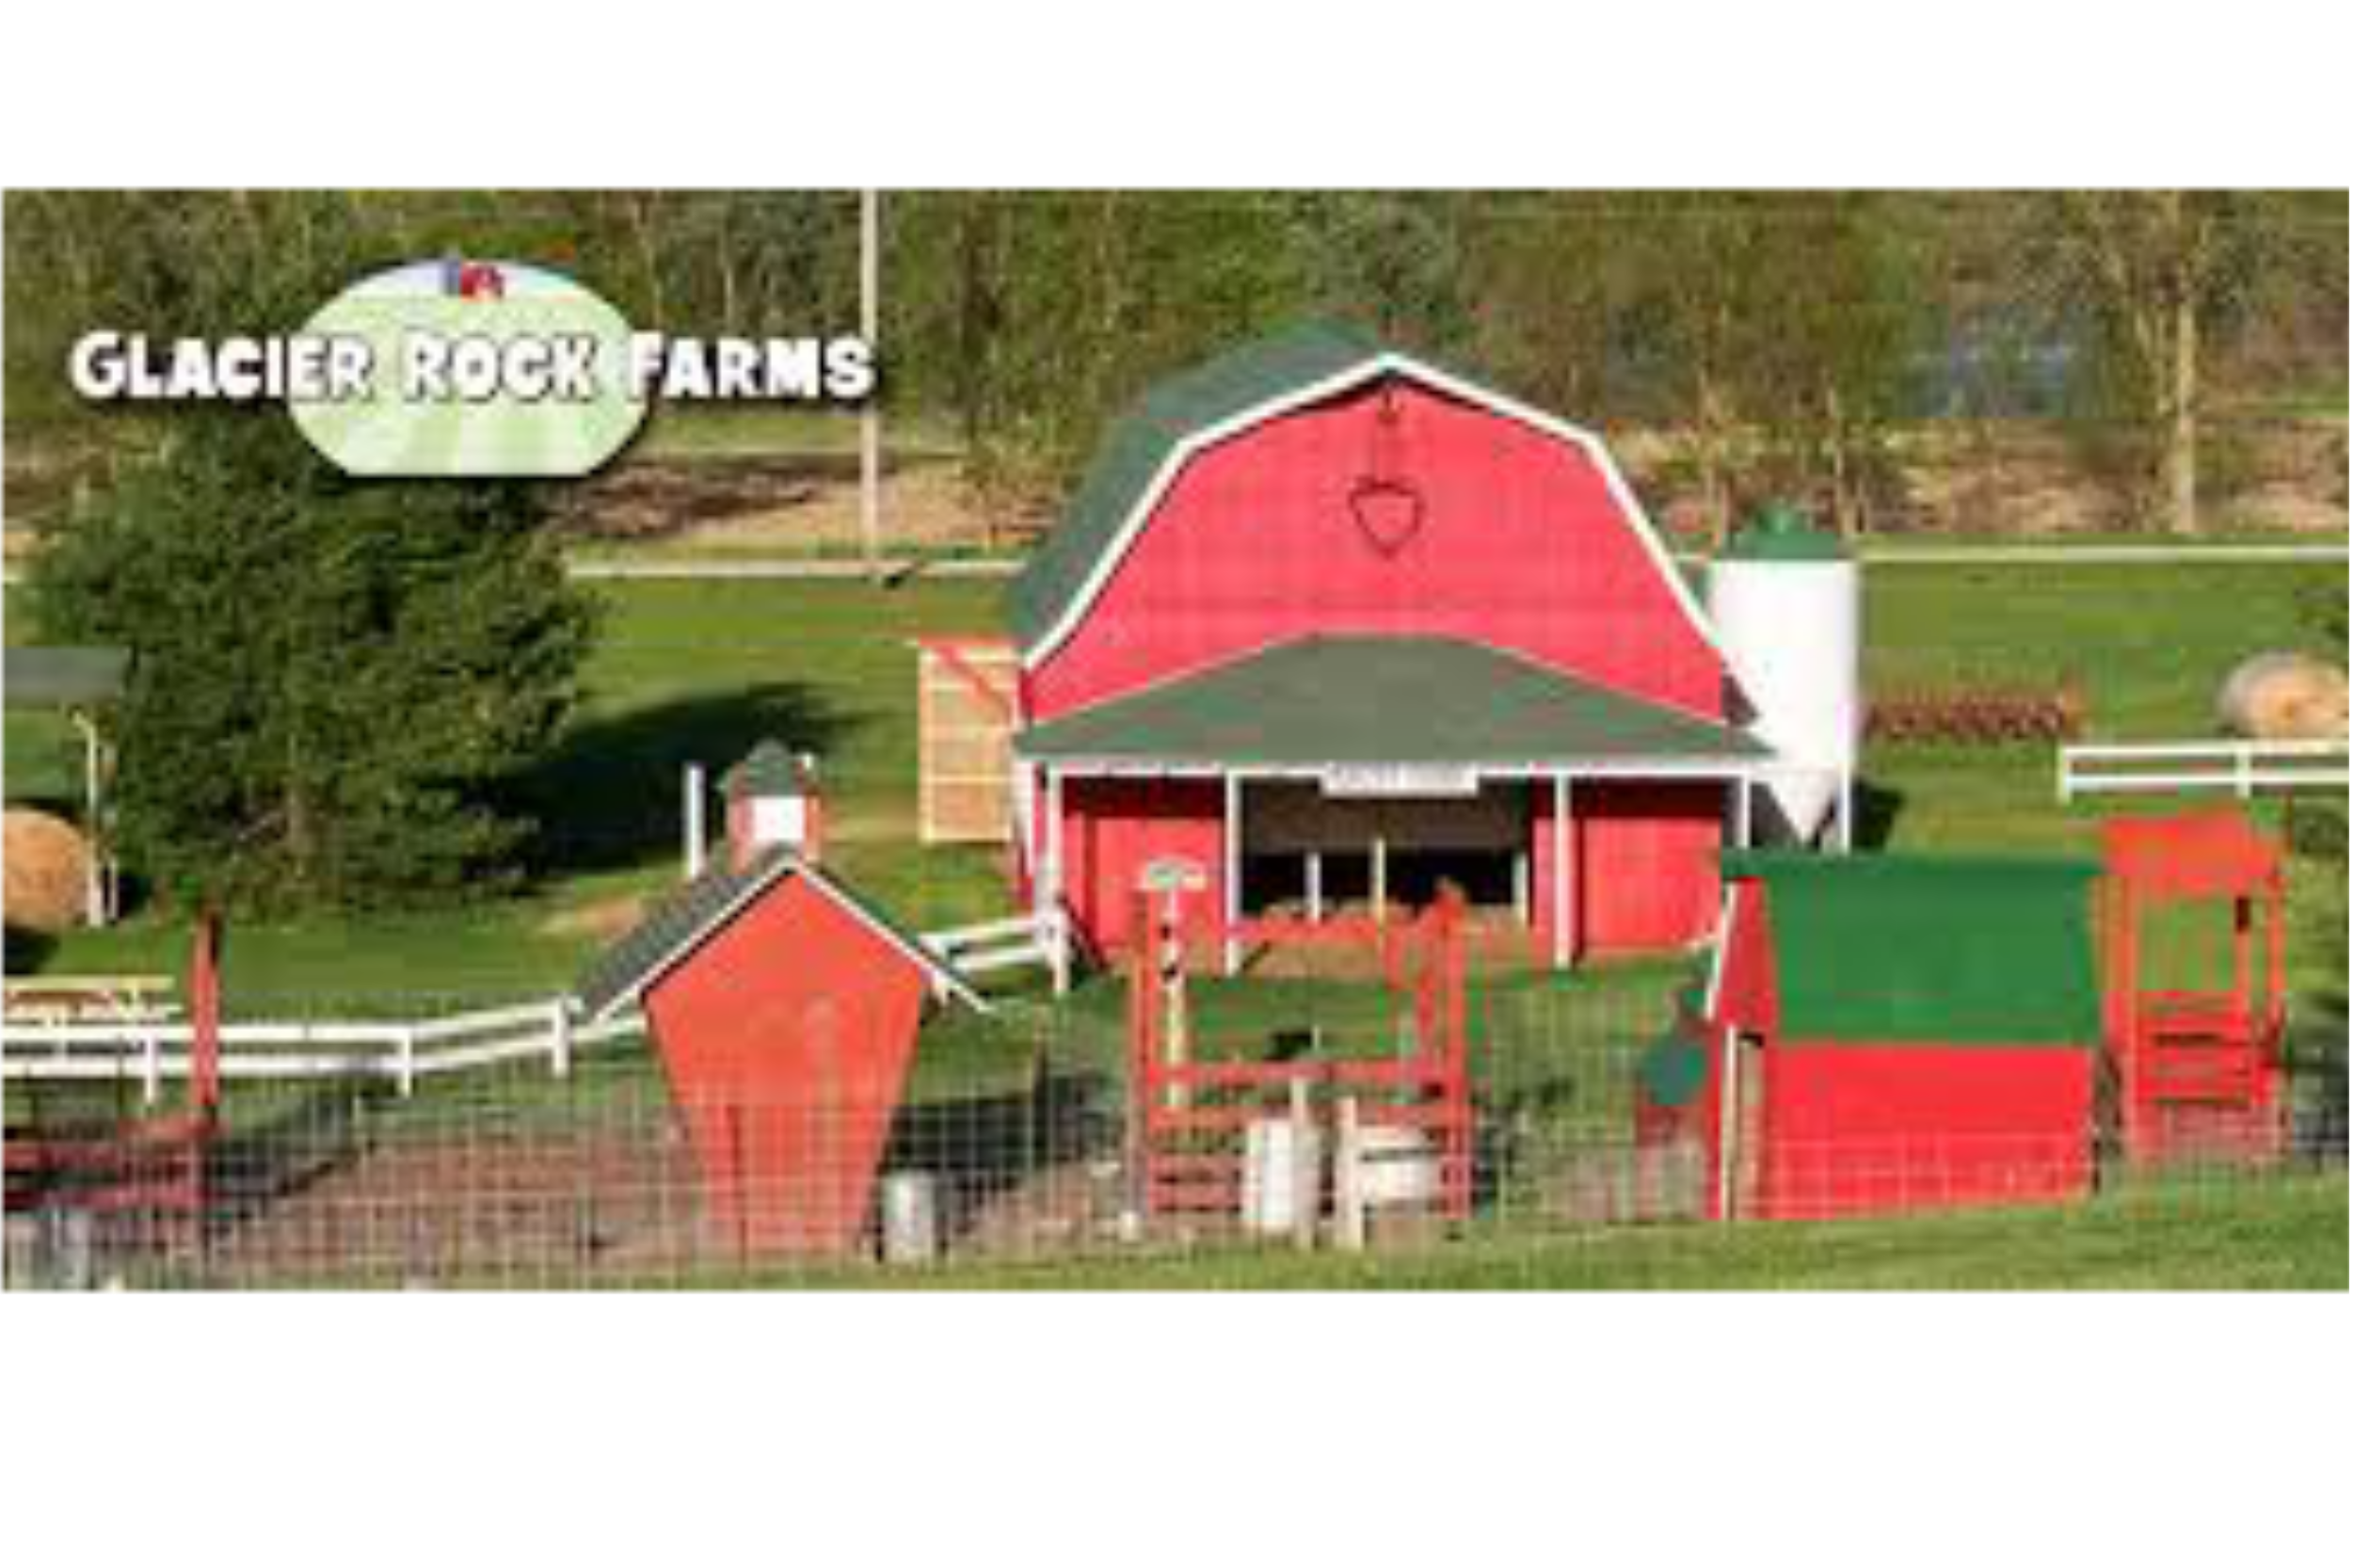 Glacier Rock Farms